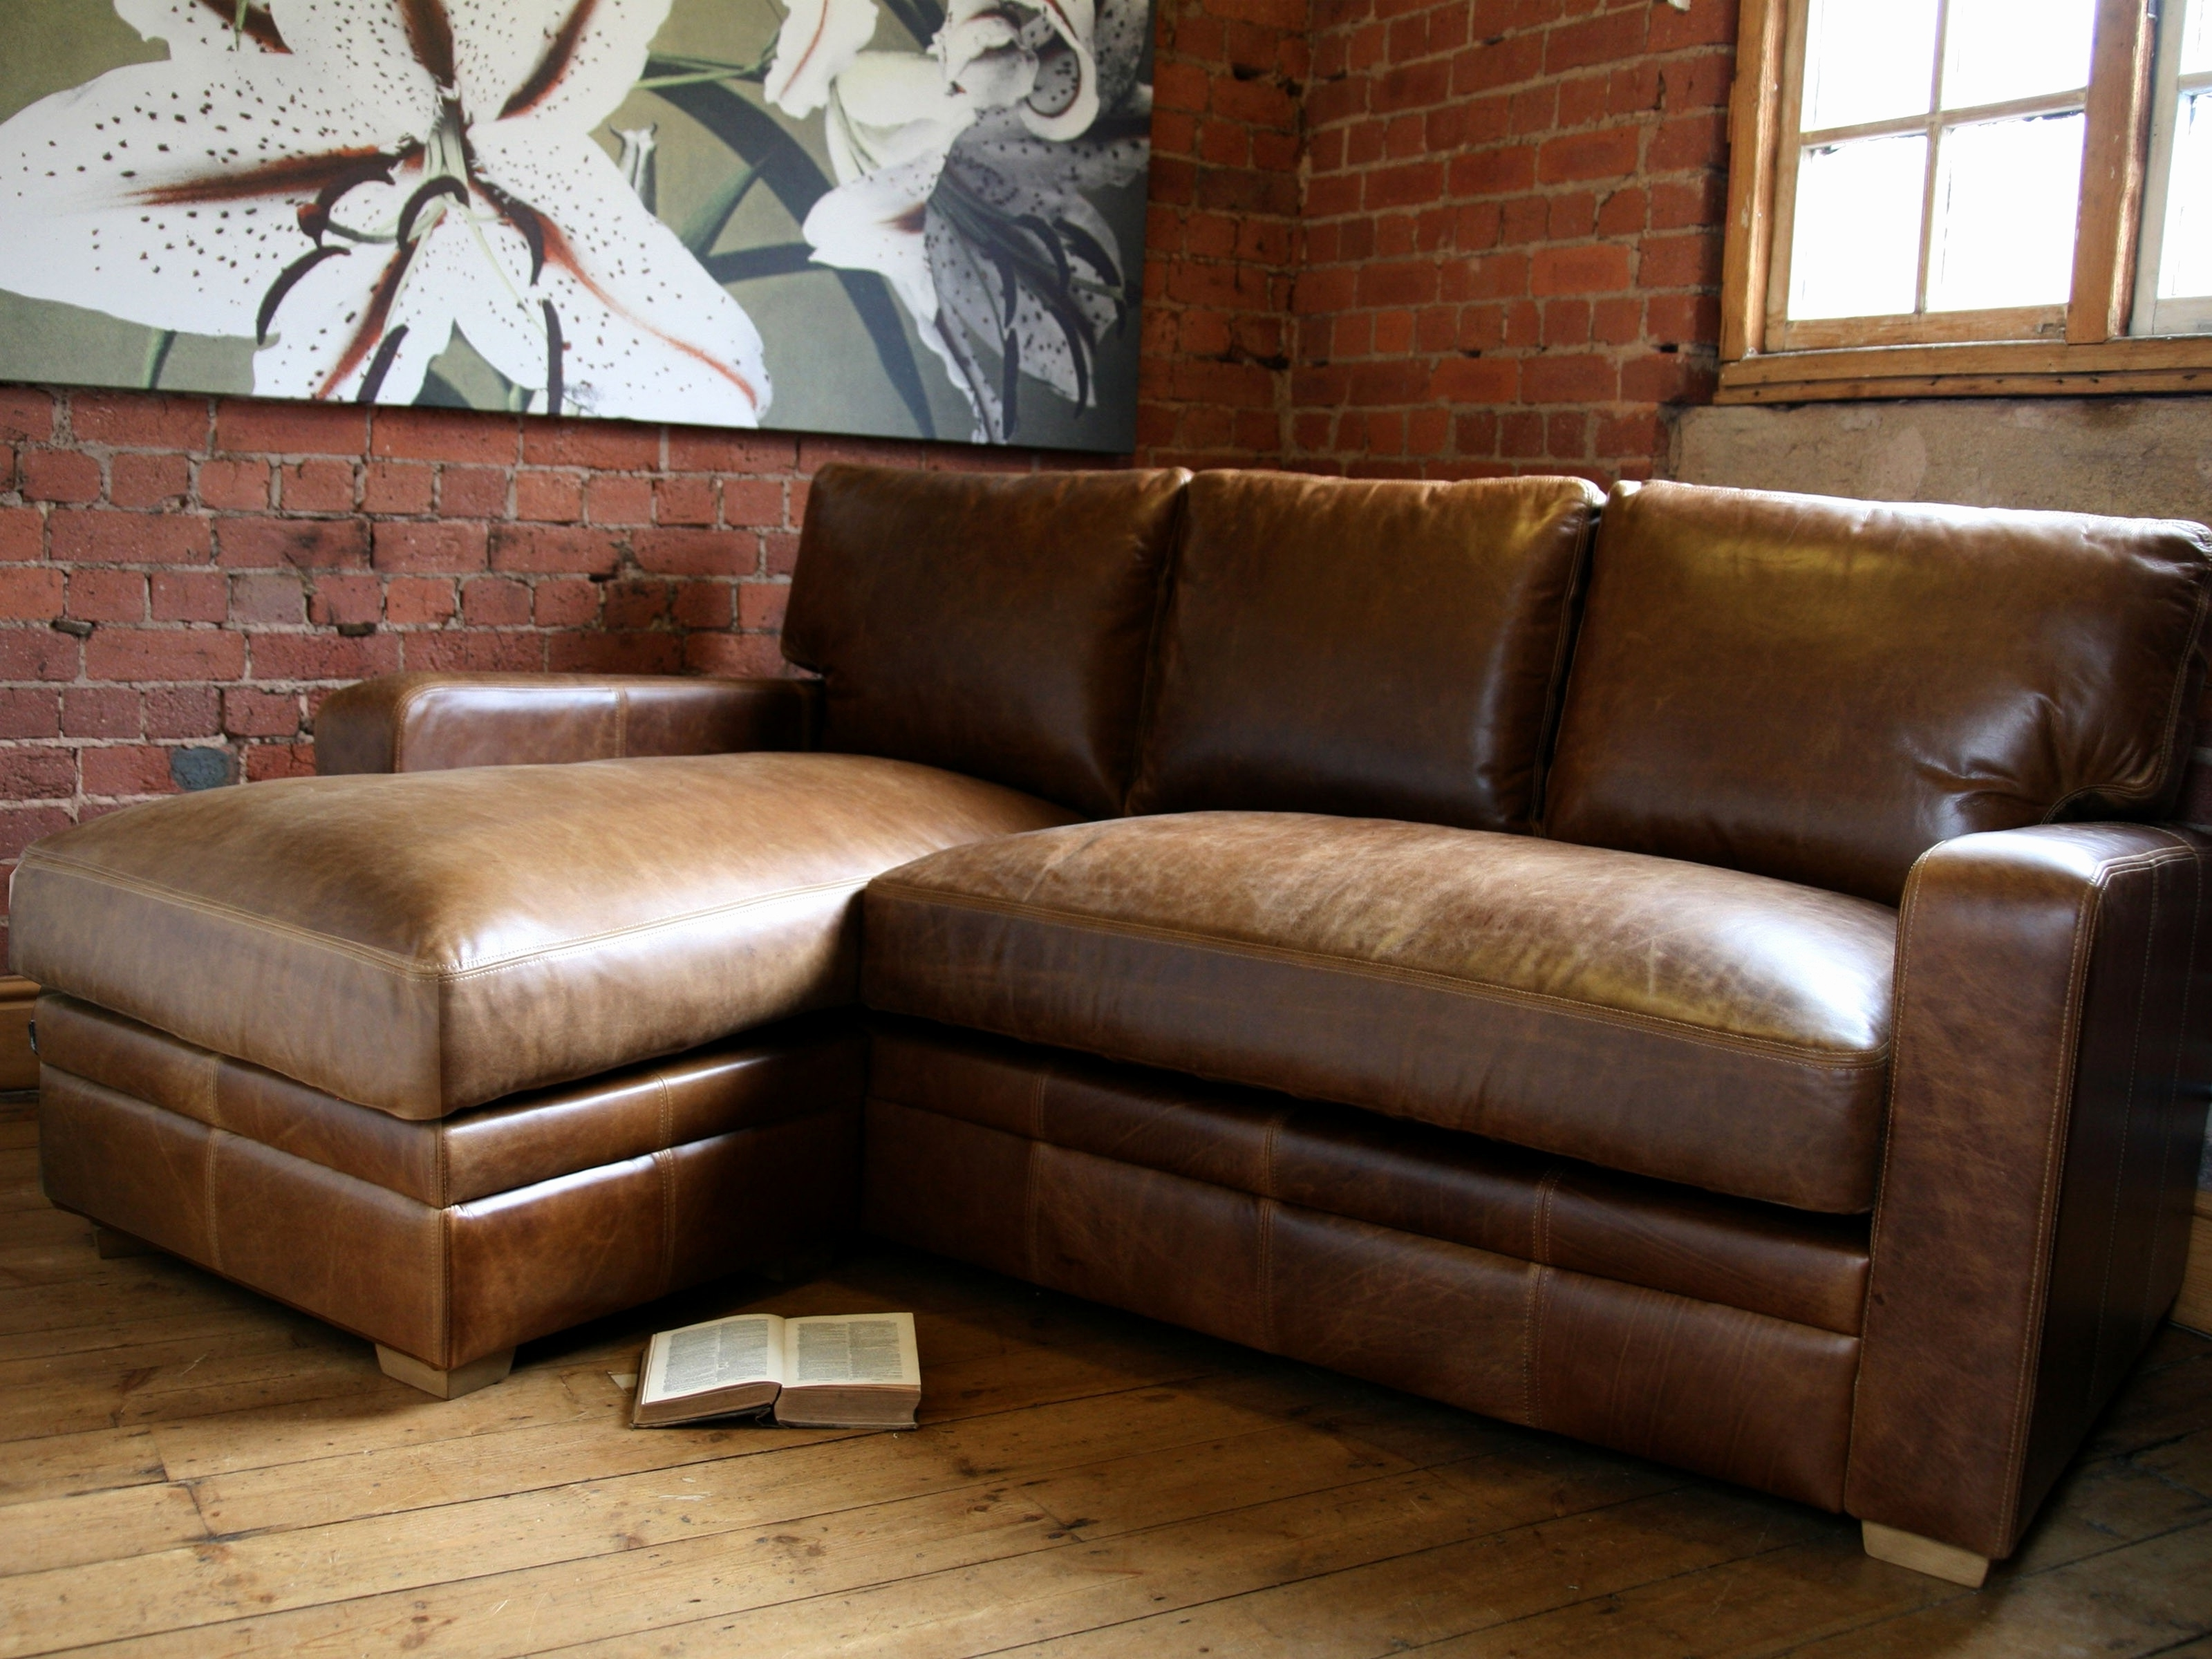 Most Recently Released Leather Couches With Chaise Lounge For Awesome L Shaped Couch With Chaise 2018 – Couches And Sofas Ideas (View 5 of 15)